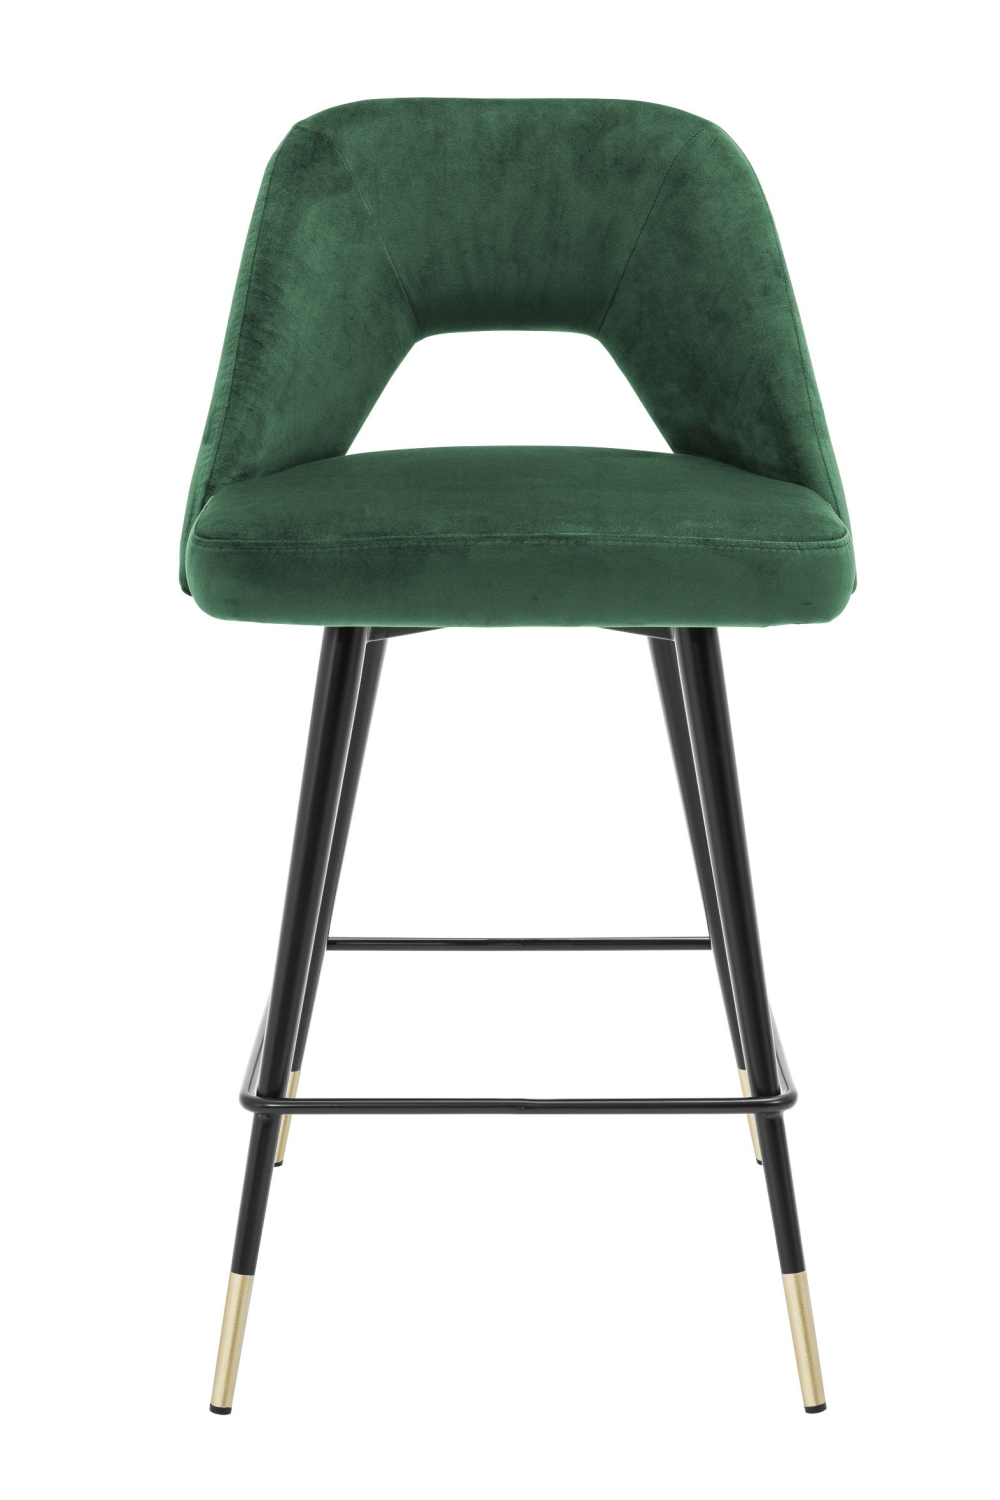 Green Velvet Counter Stool | Eichholtz Avorio